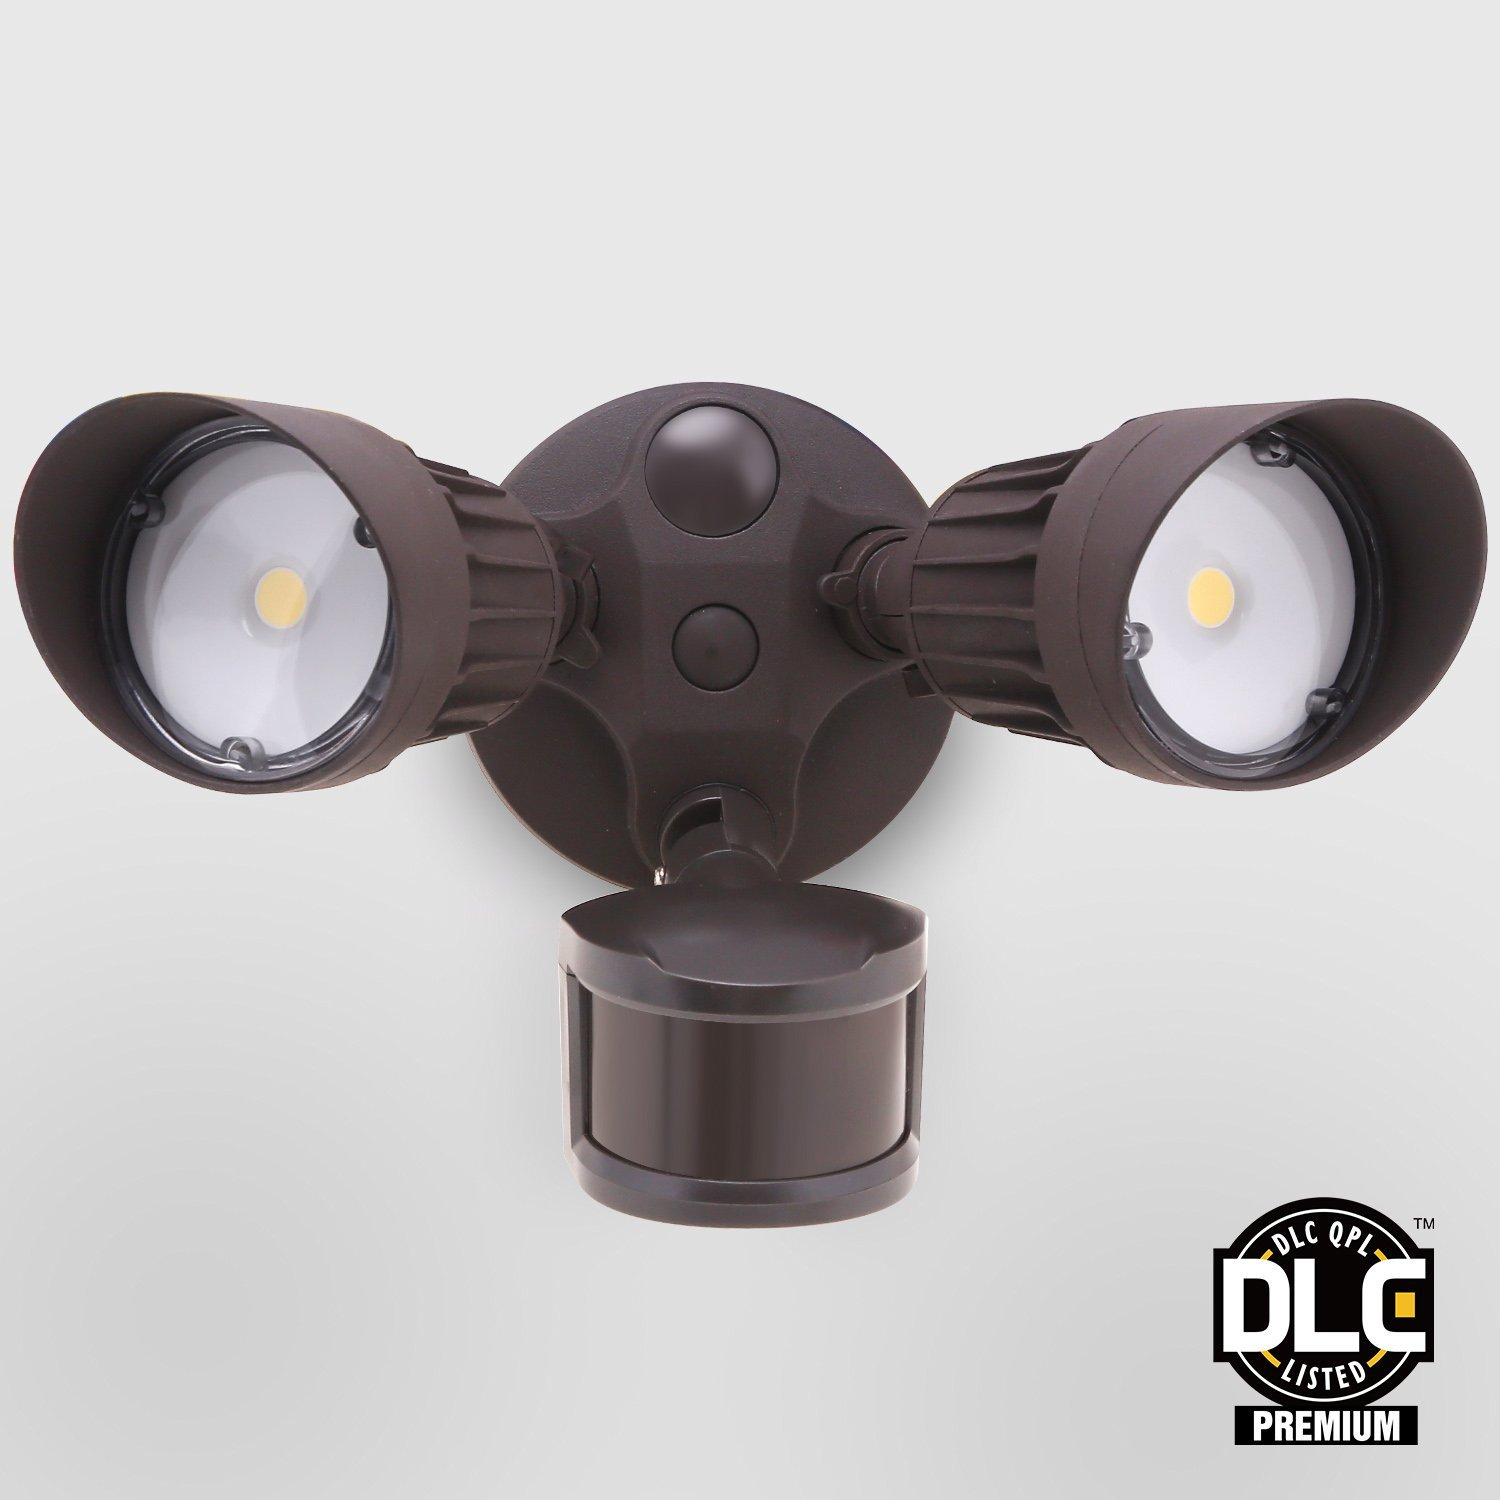 LEONLITE Dual-Head Motion-Activated LED Outdoor Security Light, Photocell Included, ETL & DLC Listed, 20W (150W Equiv.), 3 Lighting Modes, 3000K Warm White, Bronze